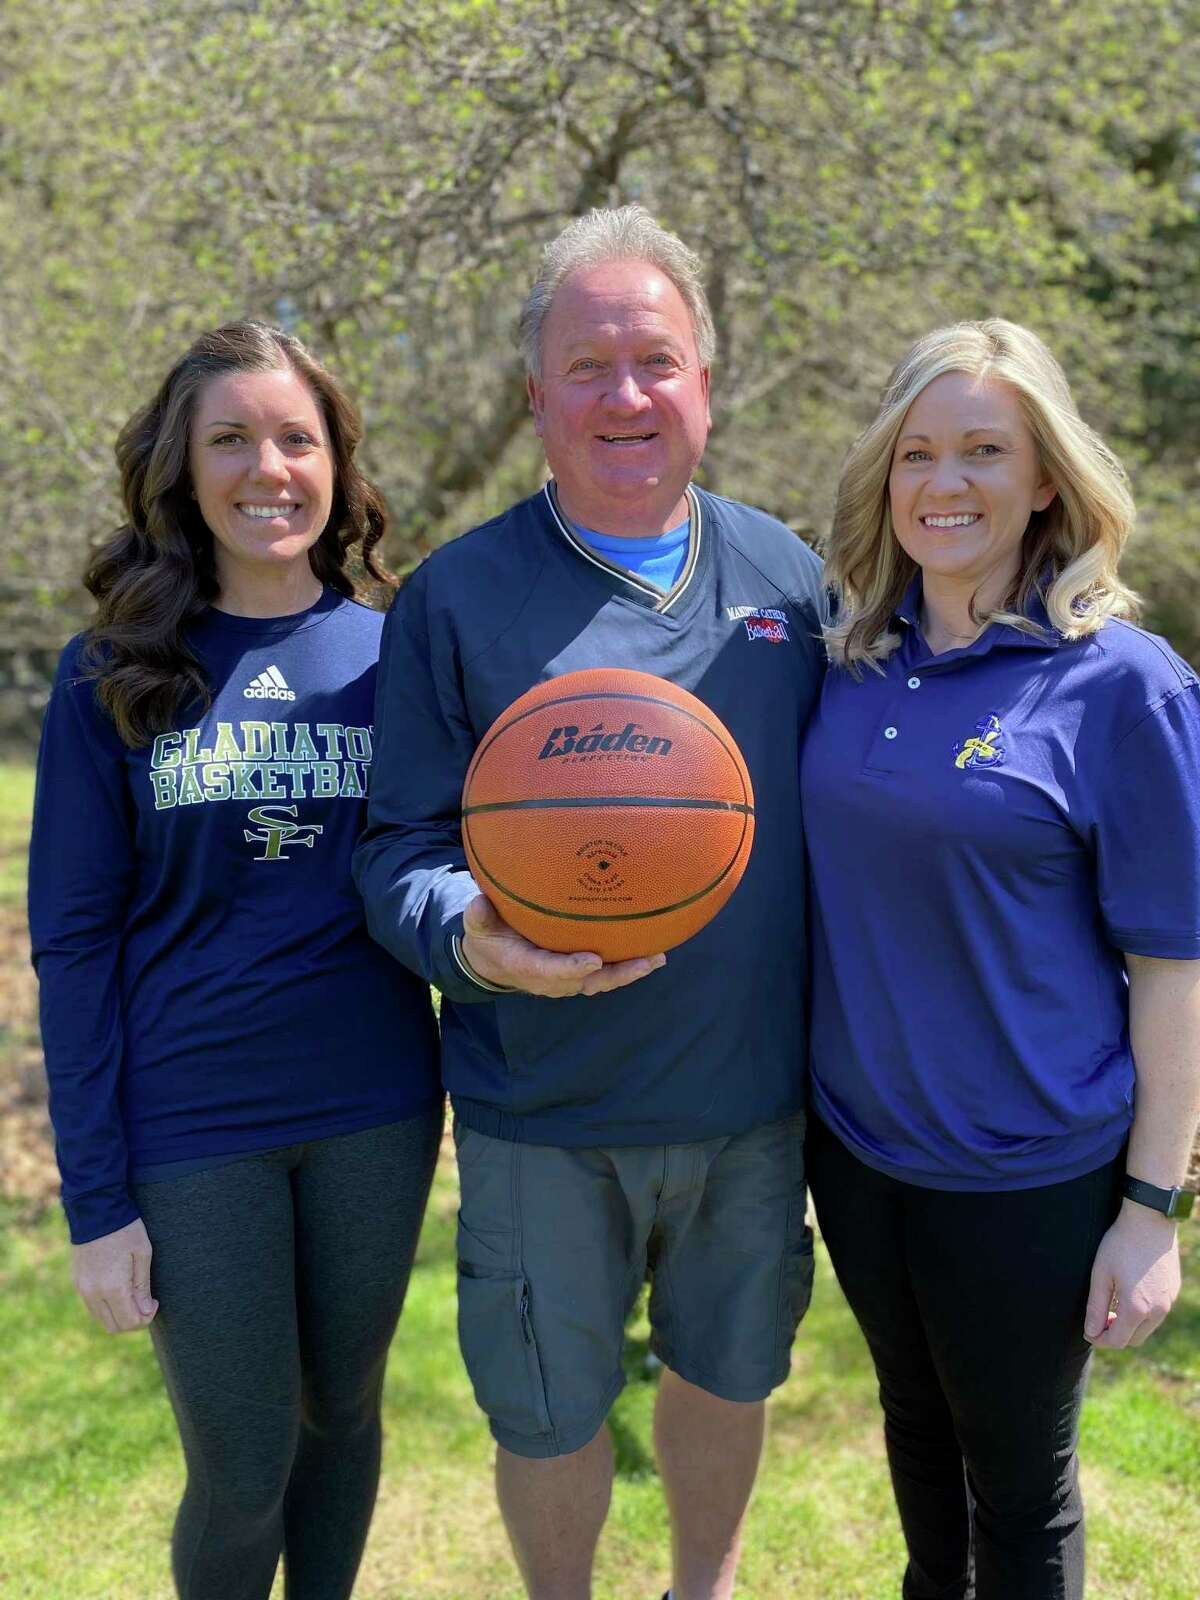 Manistee Catholic Central coach Todd Erickson and his daughters, Kelly (left) and Katie (right), are all involved in girls basketball varsity programs. (Courtesy photo)